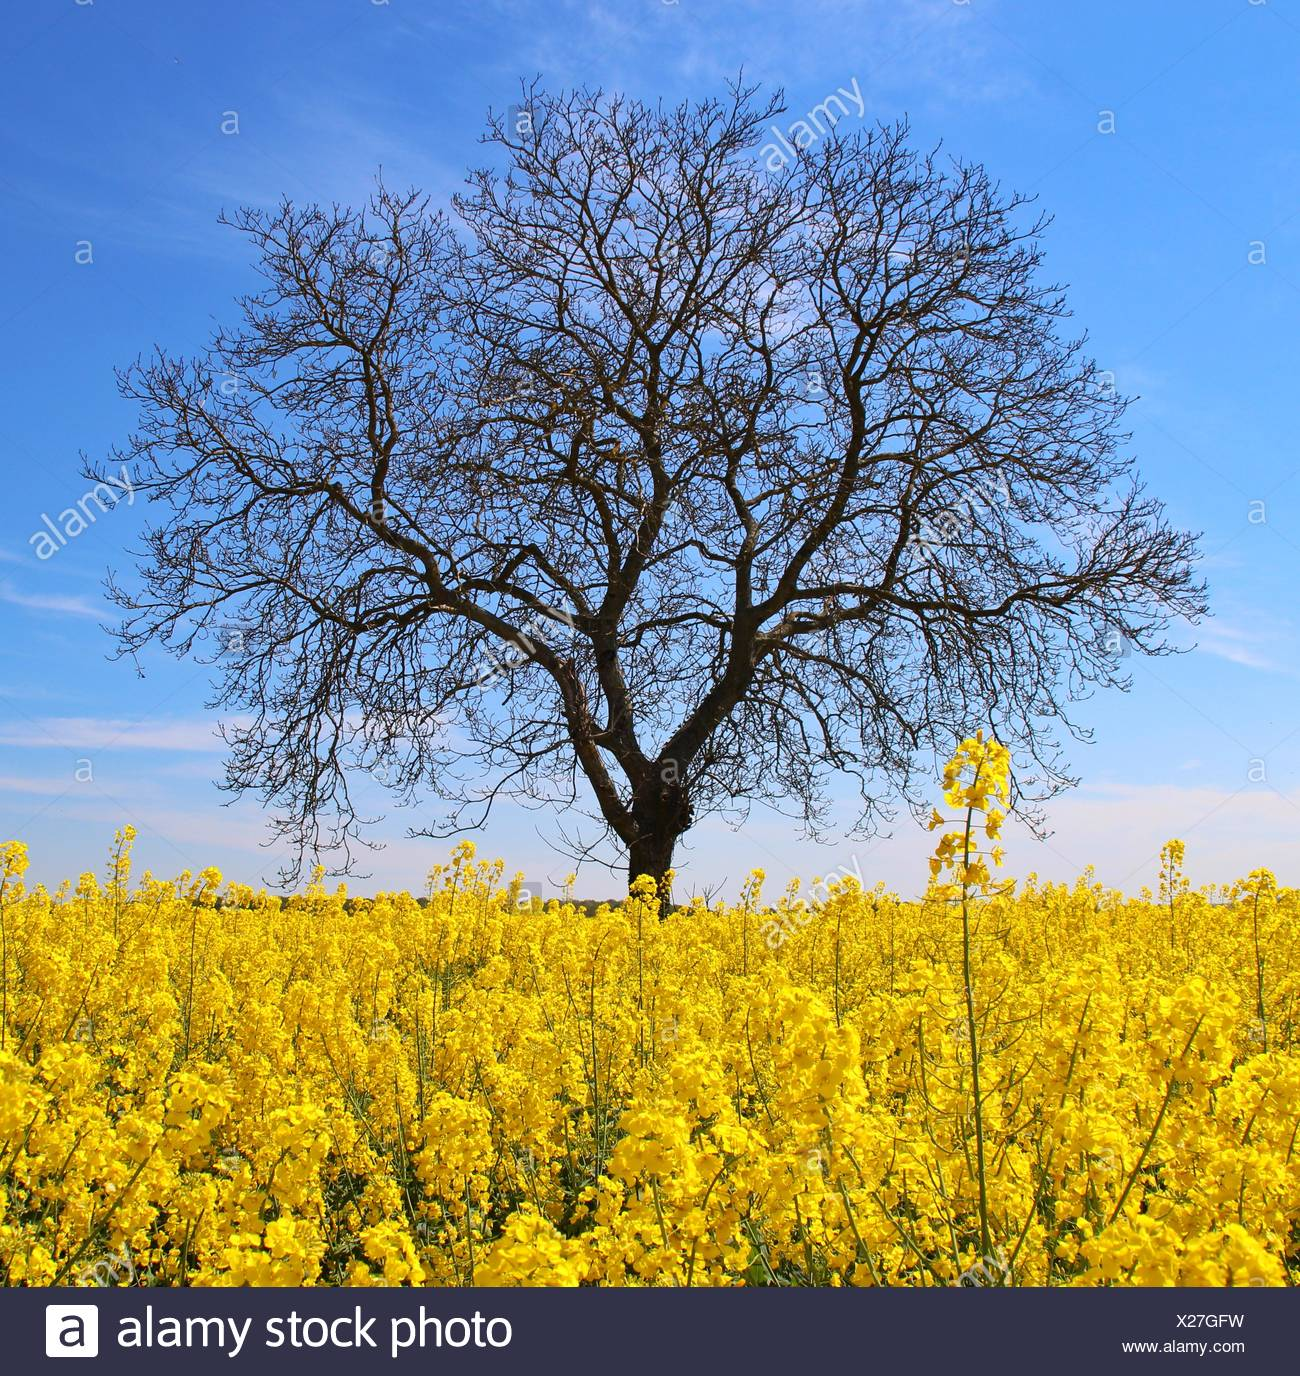 Single Bare Tree In Field Of Canola - Stock Image